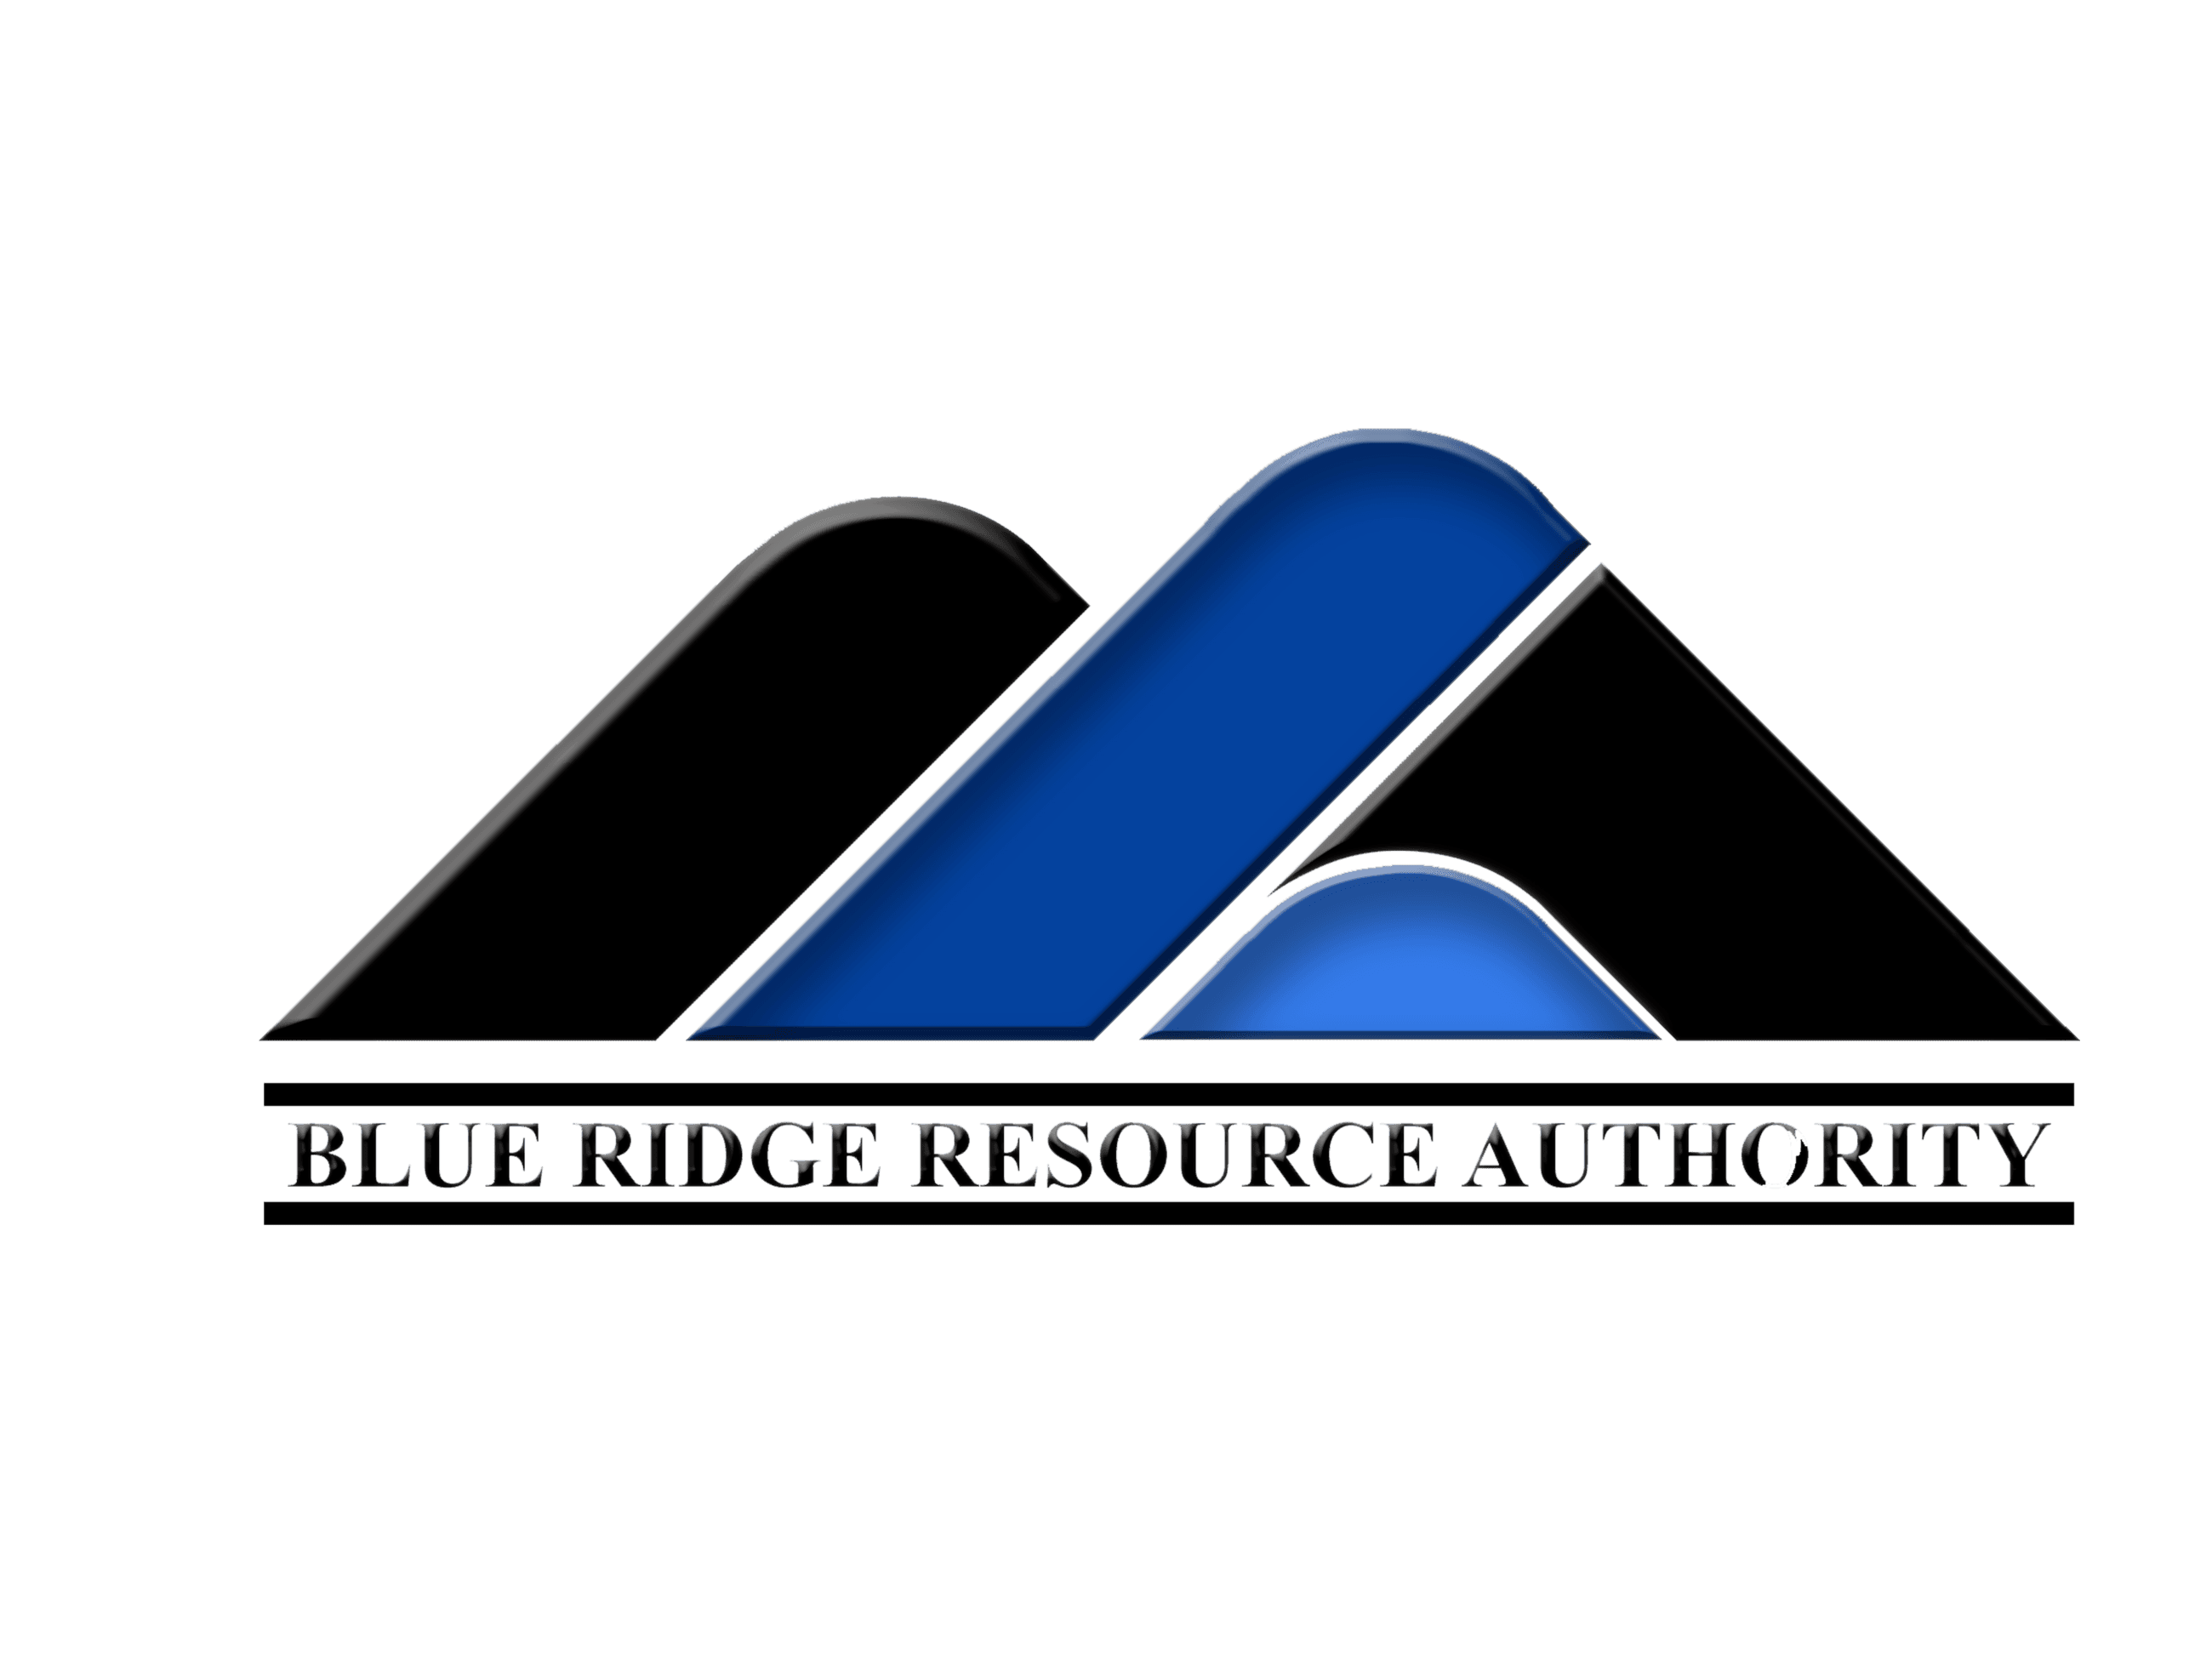 Blue Ridge Resource Authority